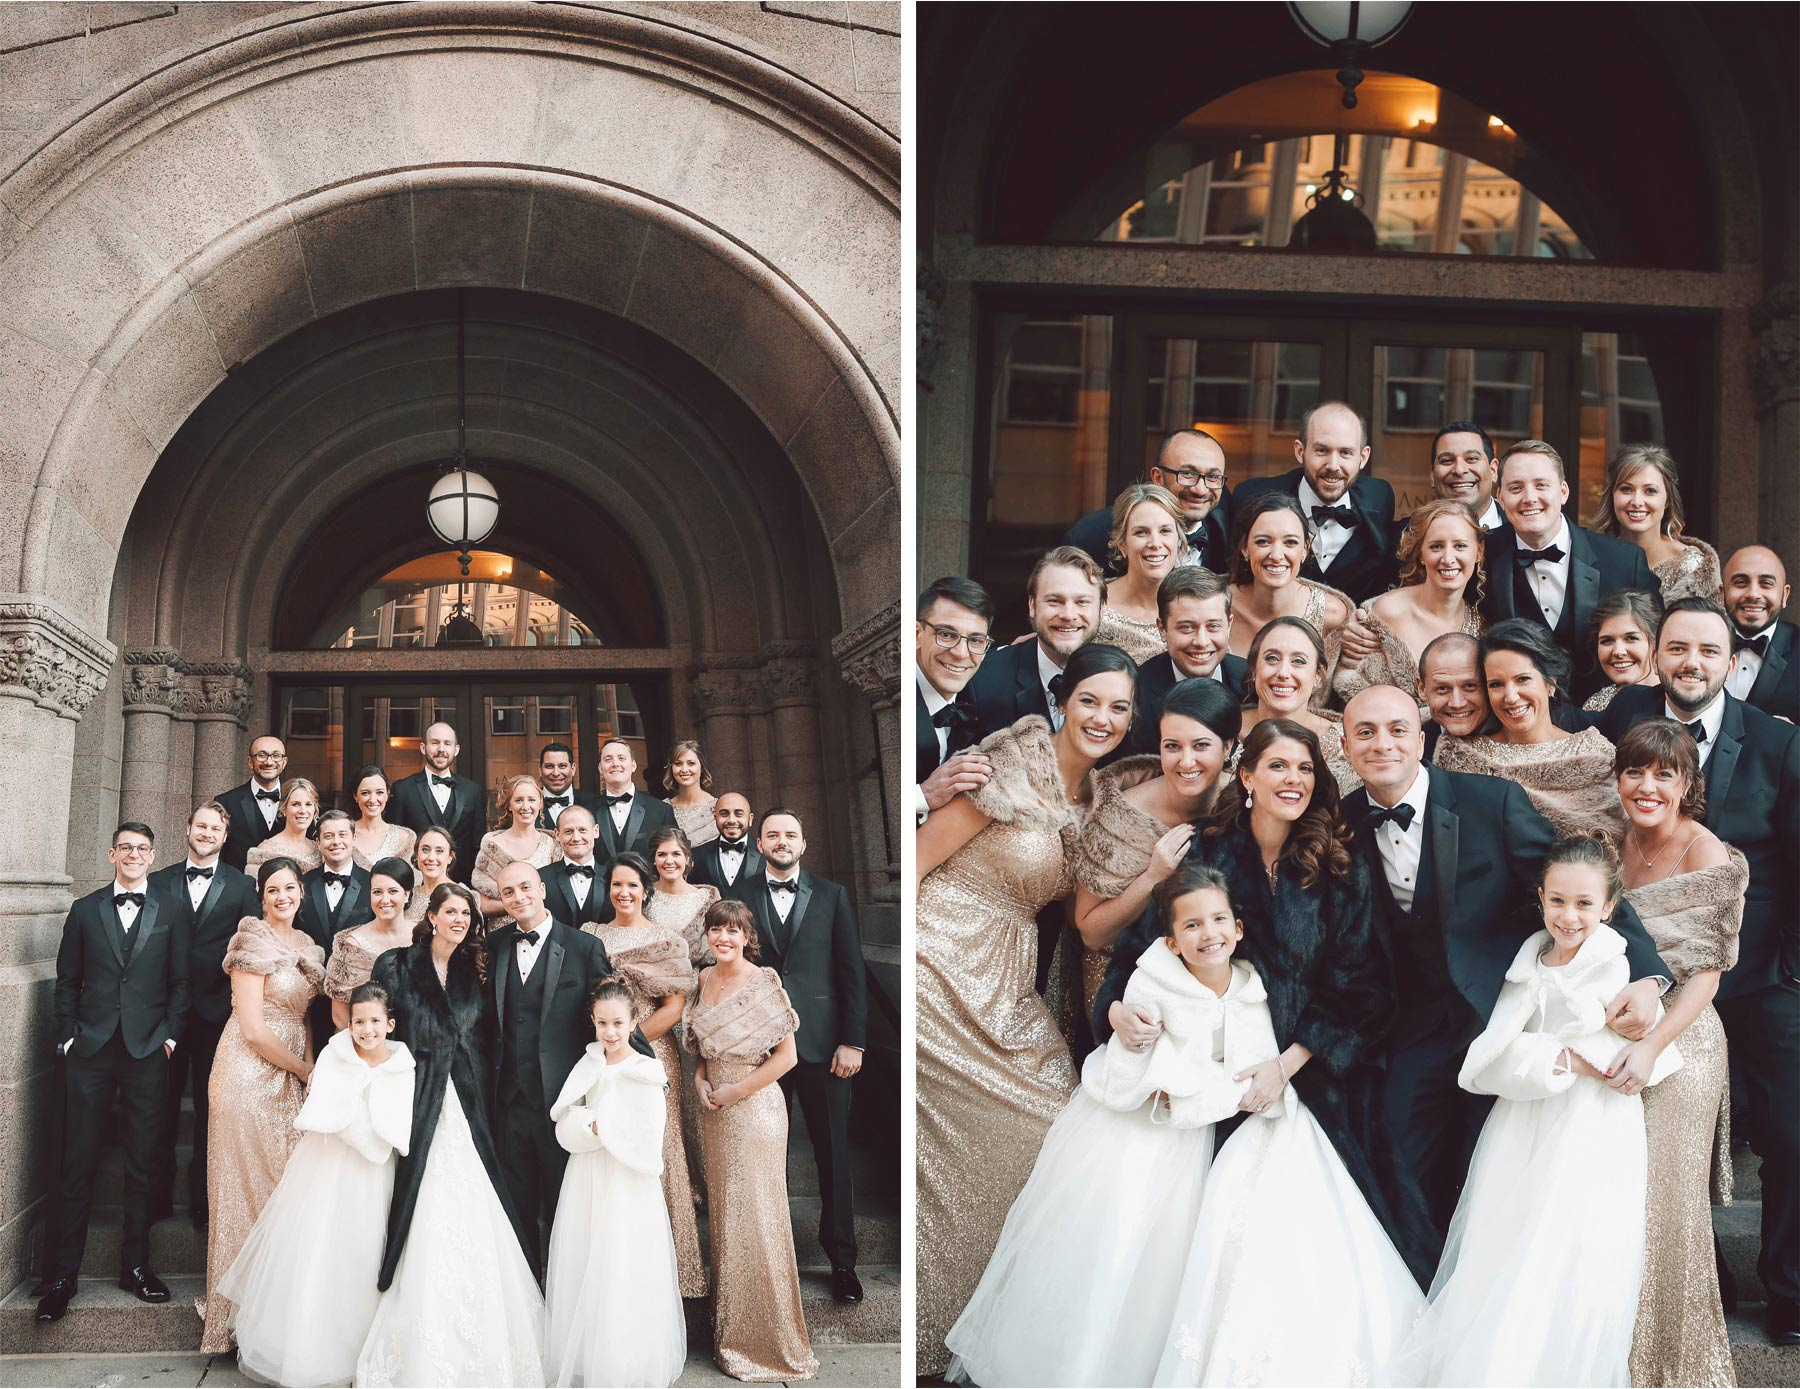 11-Saint-Paul-Minnesota-Wedding-Photographer-by-Andrew-Vick-Photography-Winter-New-Years-Eve-Landmark-Center-Bride-Groom-Bridal-Party-Bridesmaids-Groomsmen-Fur-Coat-Shrug-Vintage-Emily-and-Michael.jpg